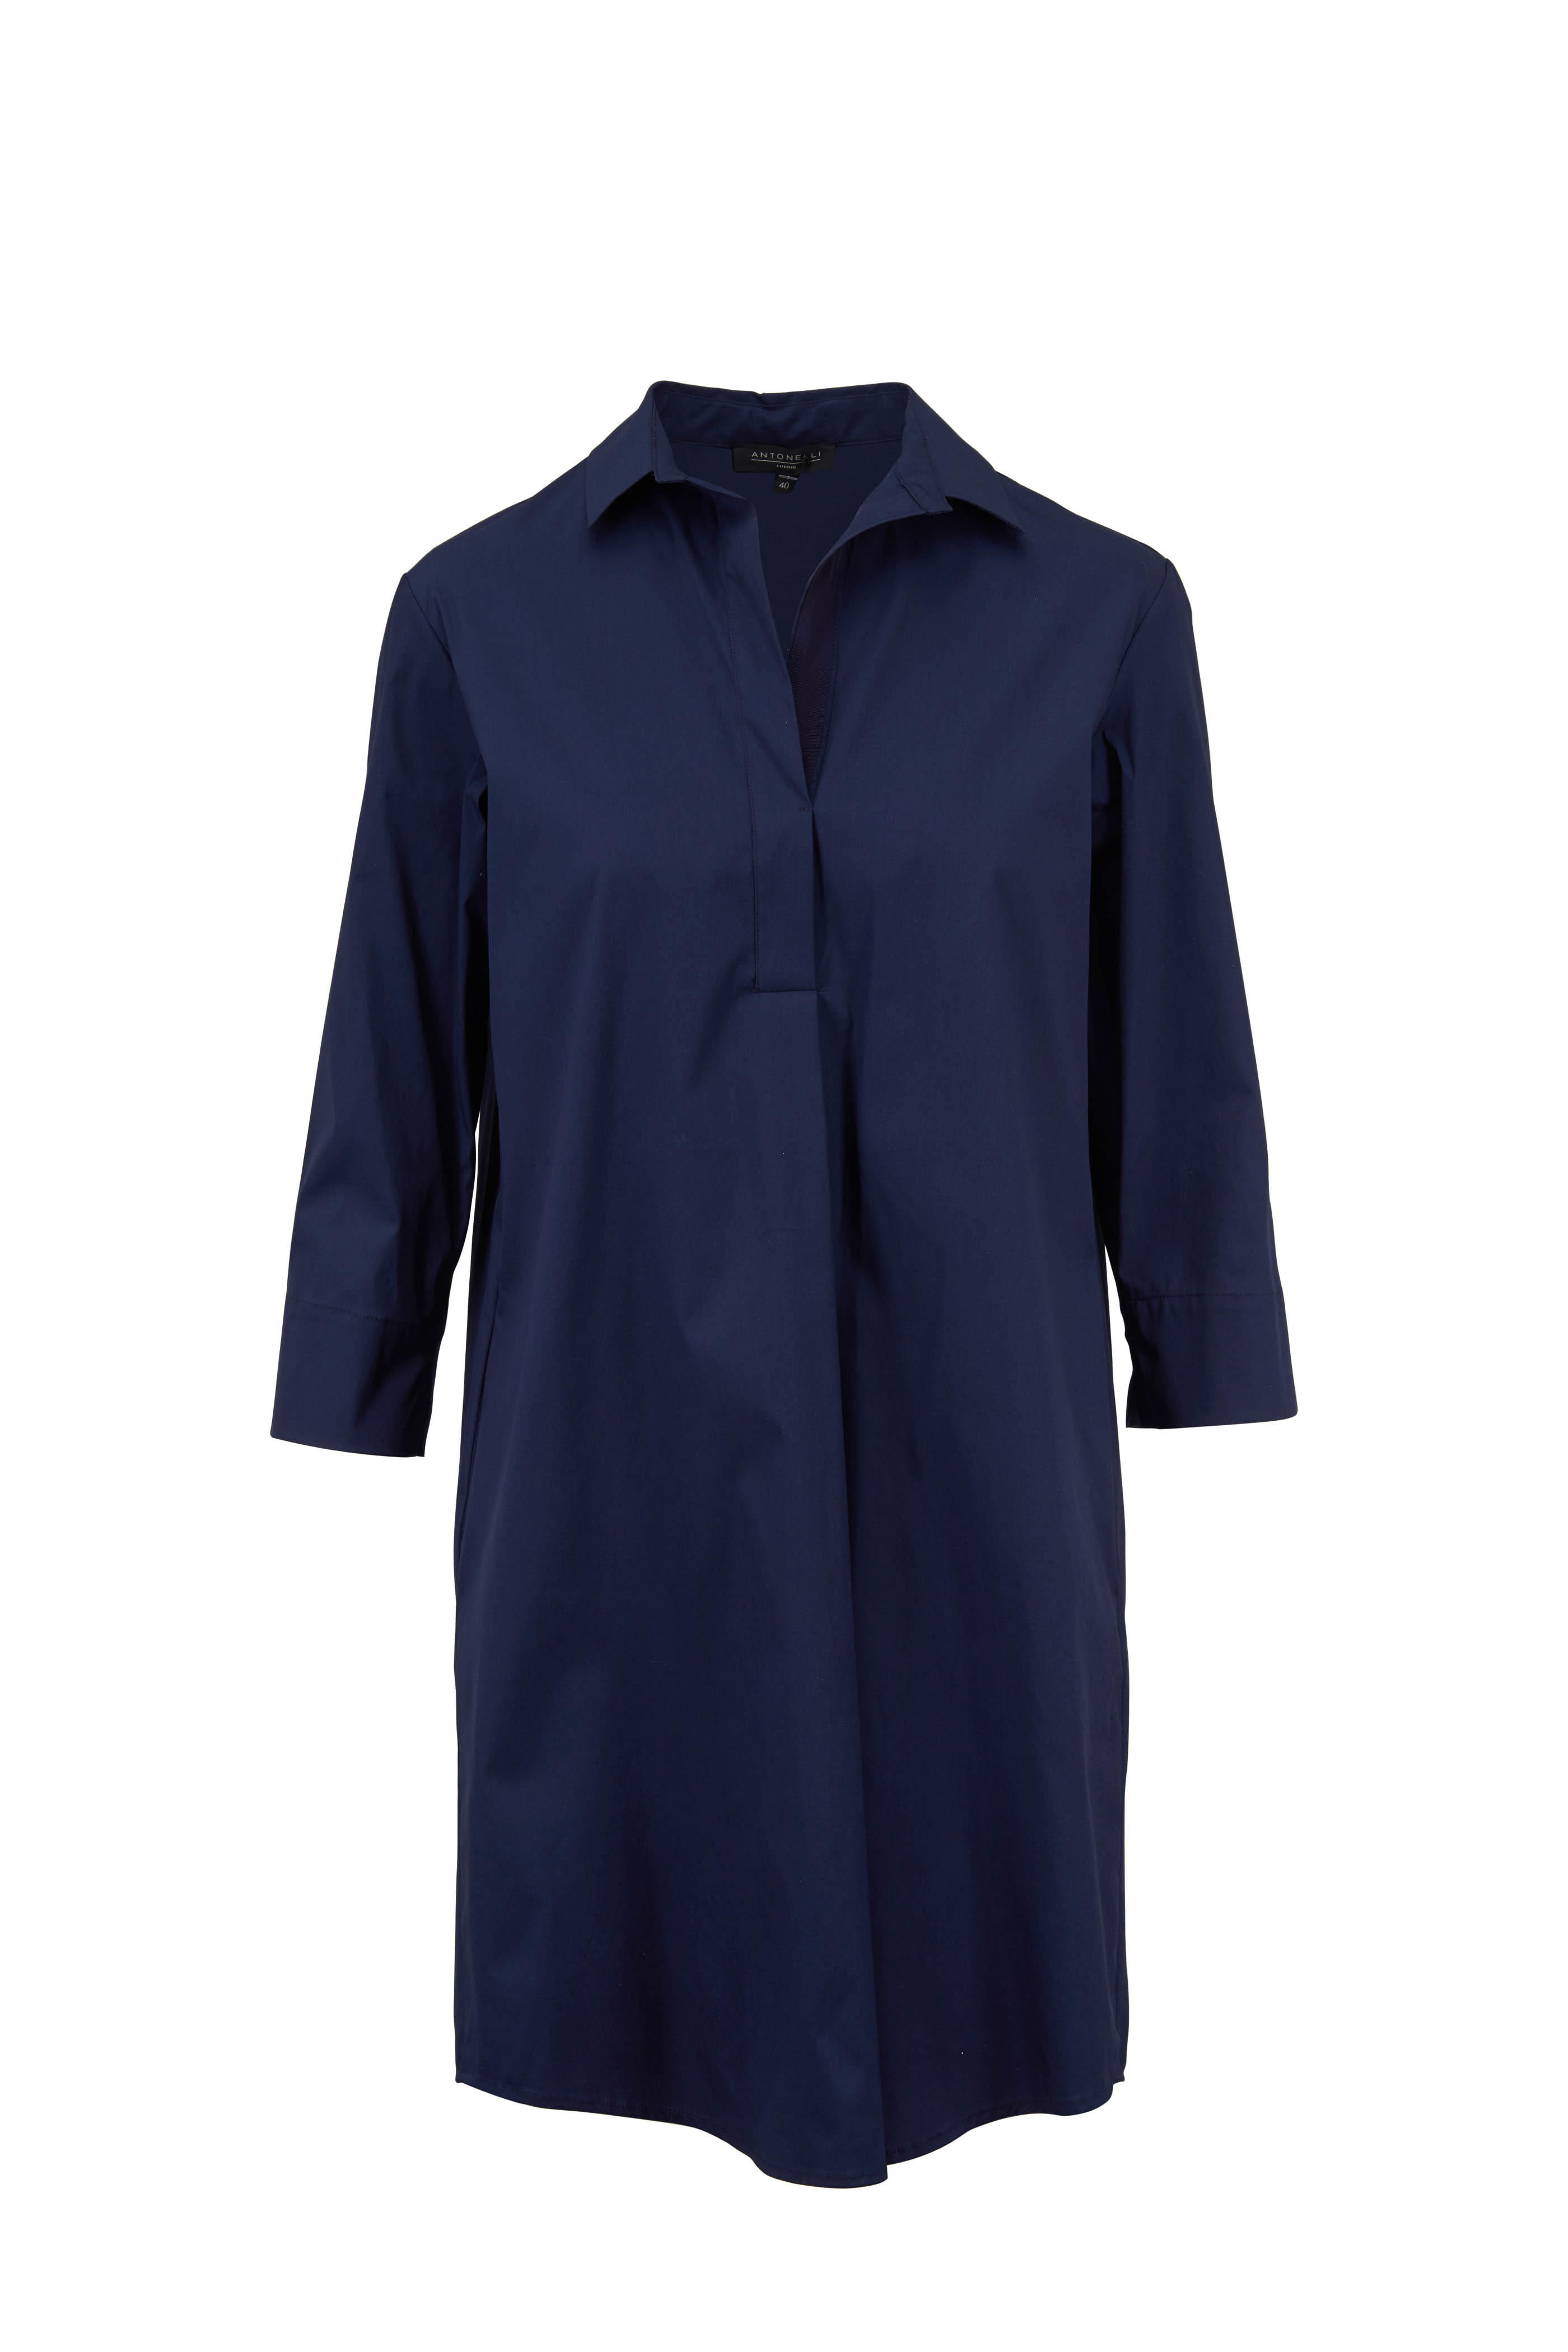 ed13a24319 Antonelli - Montana Navy Blue Stretch Poplin Shirtdress